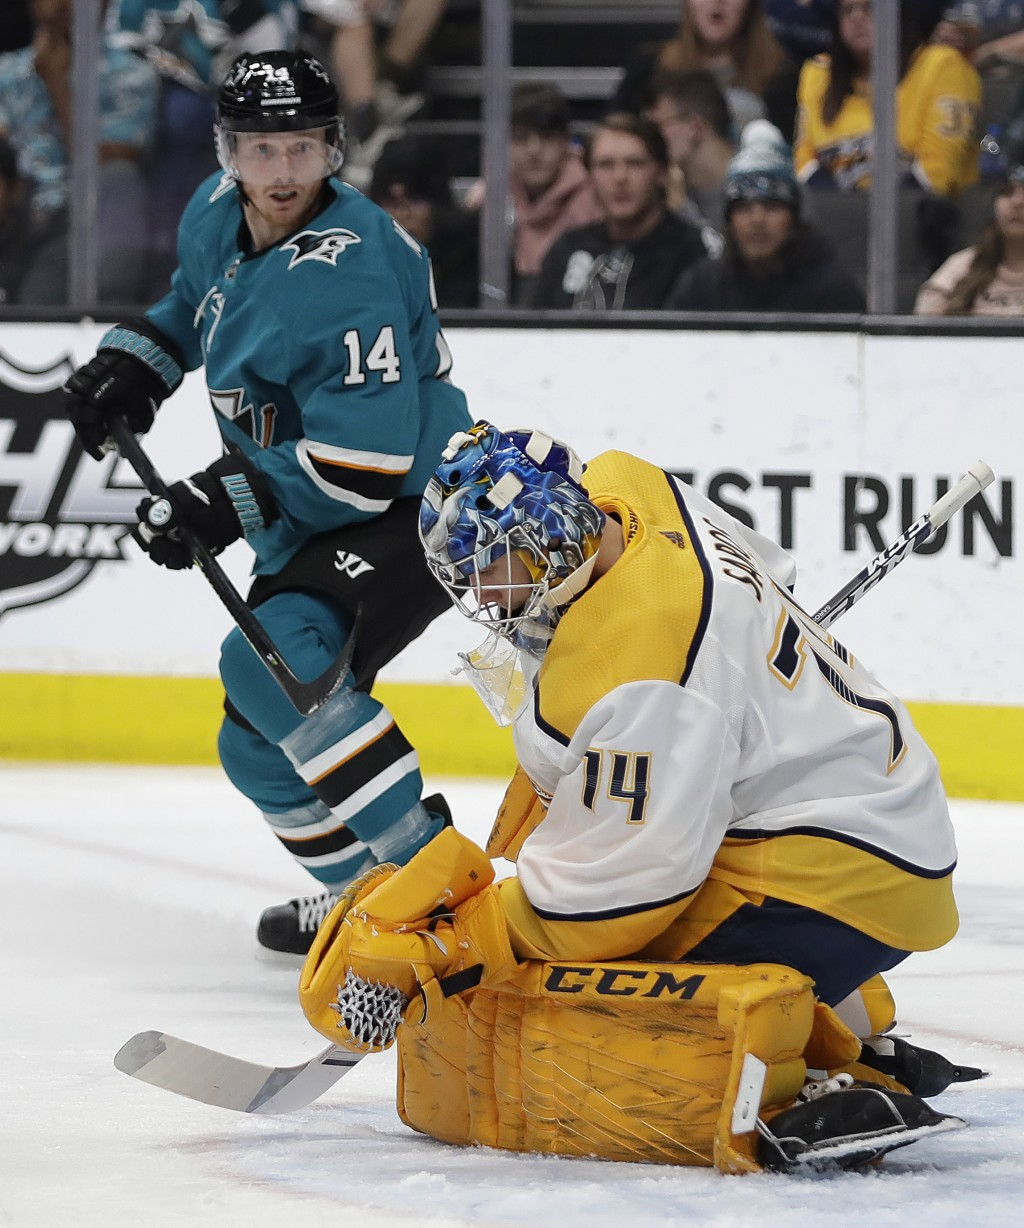 Nashville Predators goalie Mattias Ekholm, right, blocks a shot from San Jose Sharks' Gustav Nyquist during the first period of an NHL hockey game Sat